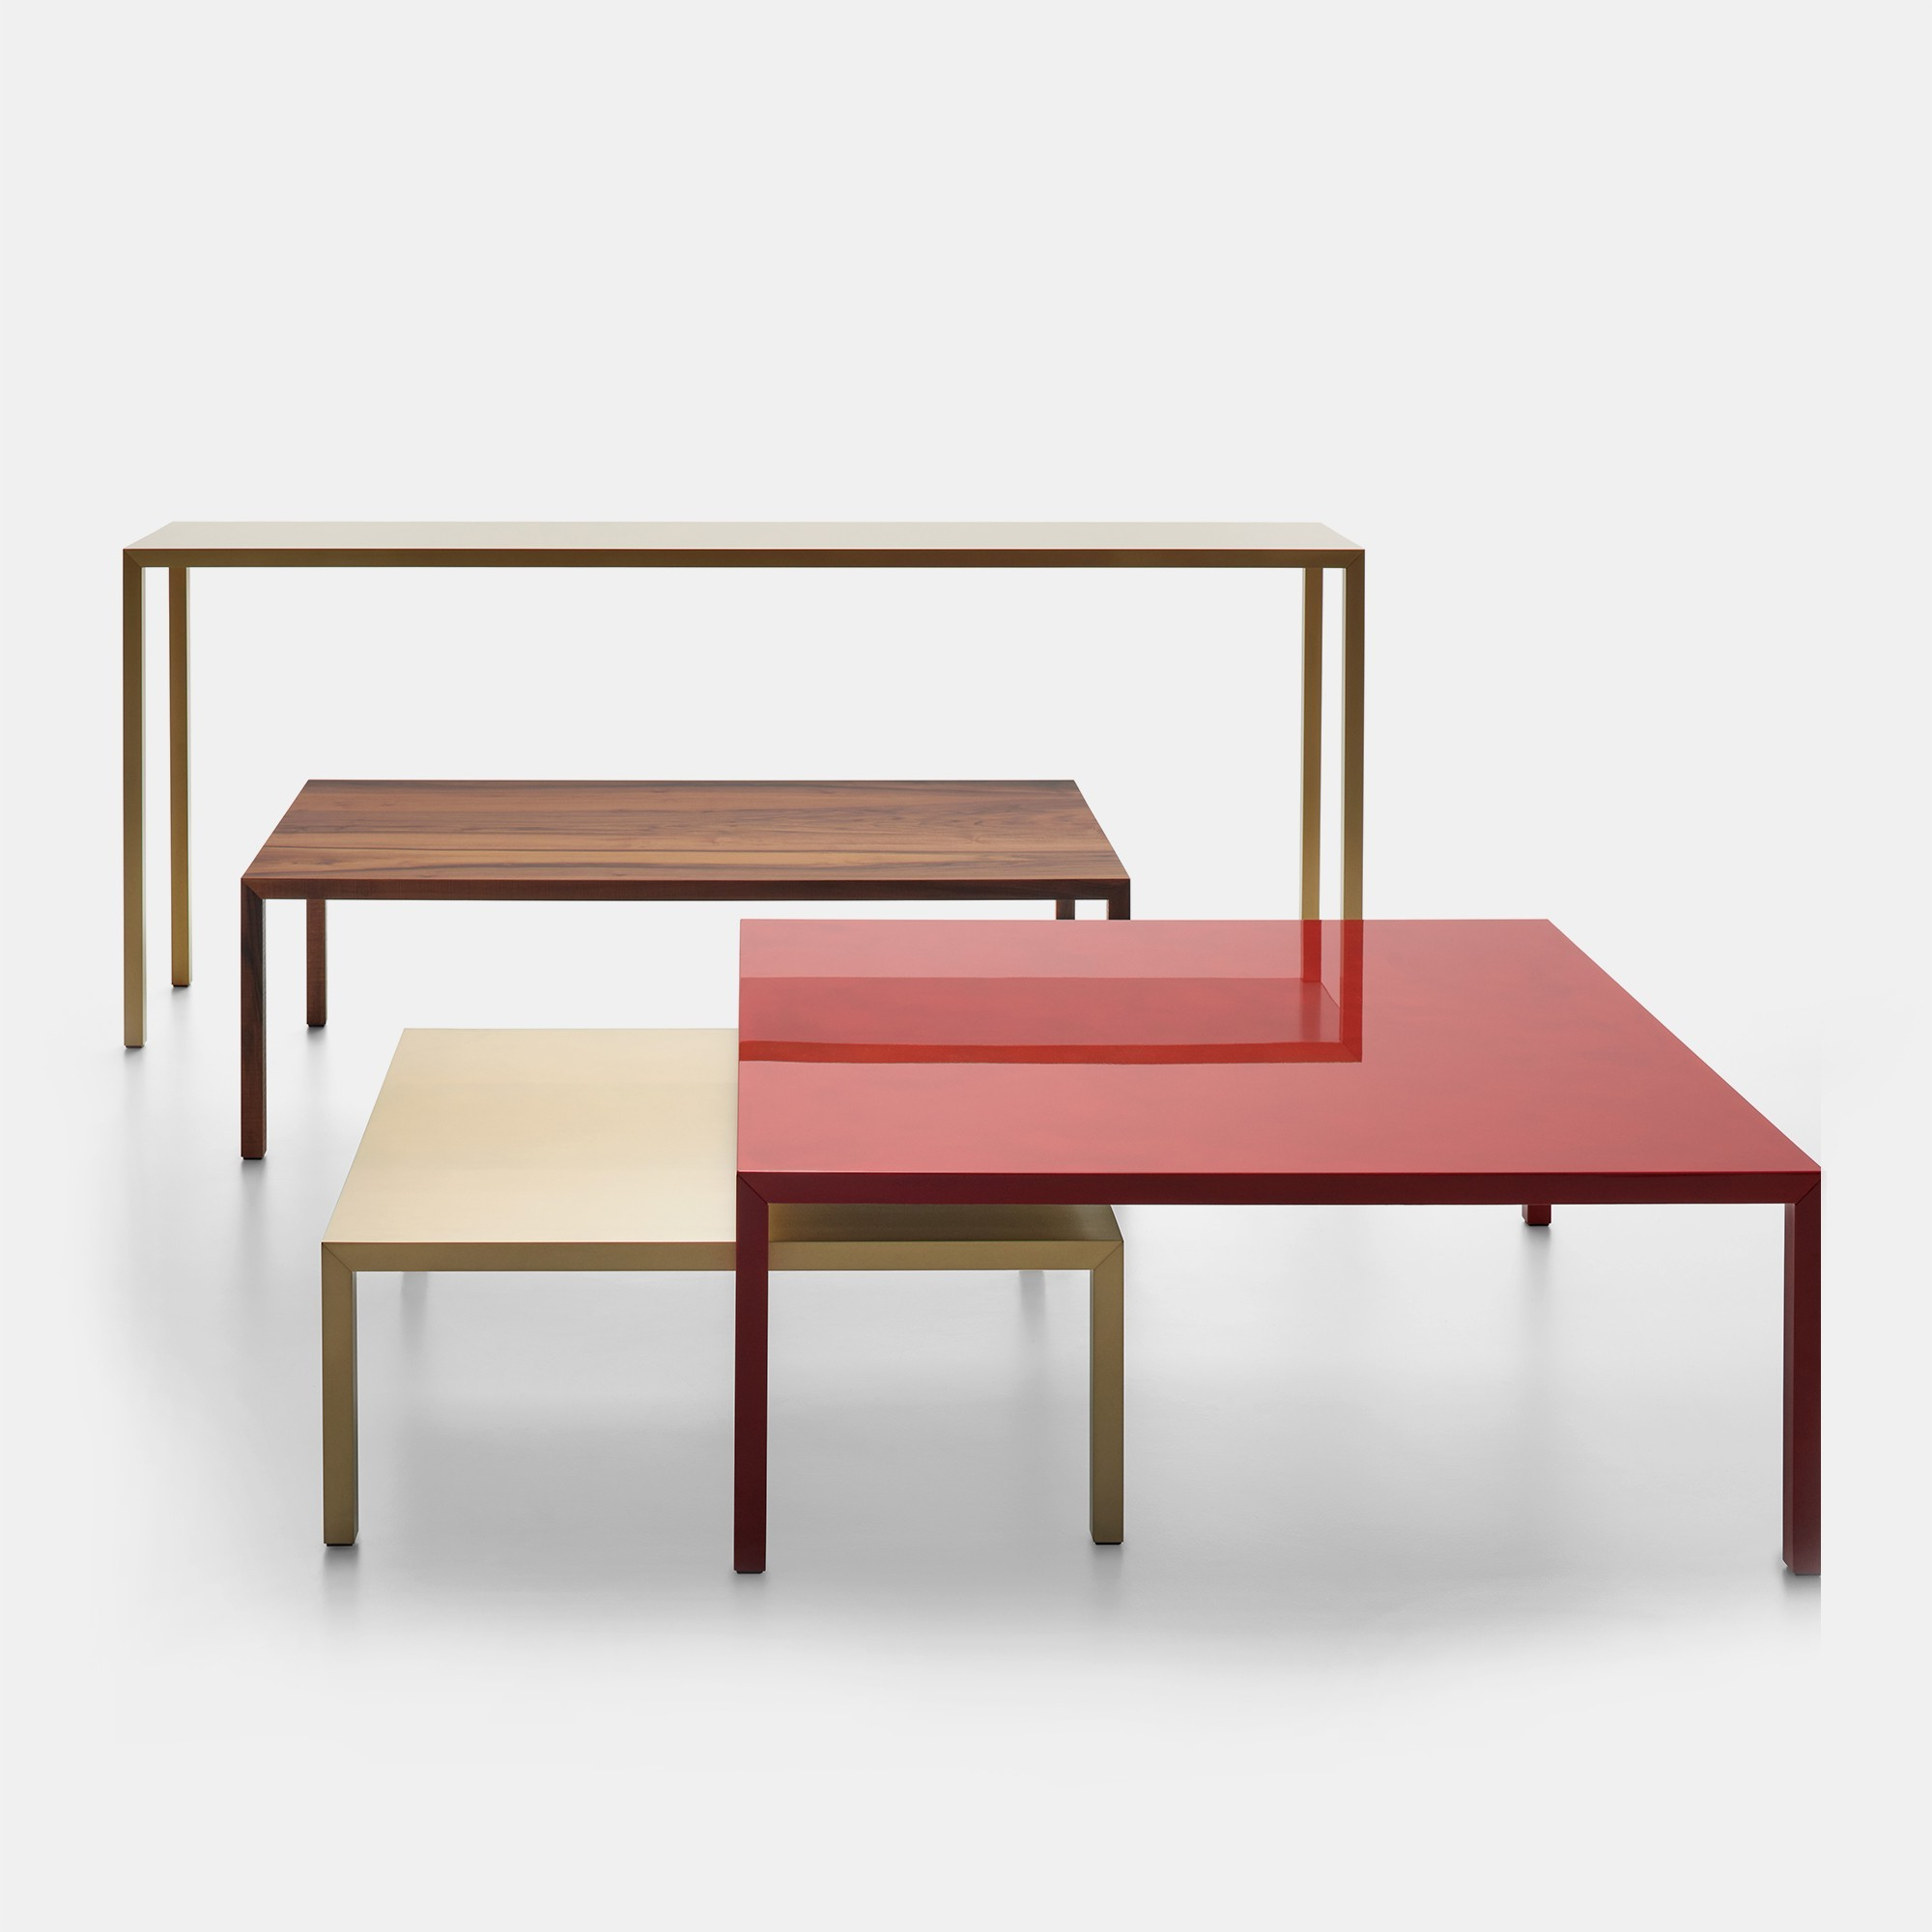 Tense Table Celebrates Its 10th Anniversary With New Dimensions And Pertaining To Intarsia Console Tables (View 18 of 20)